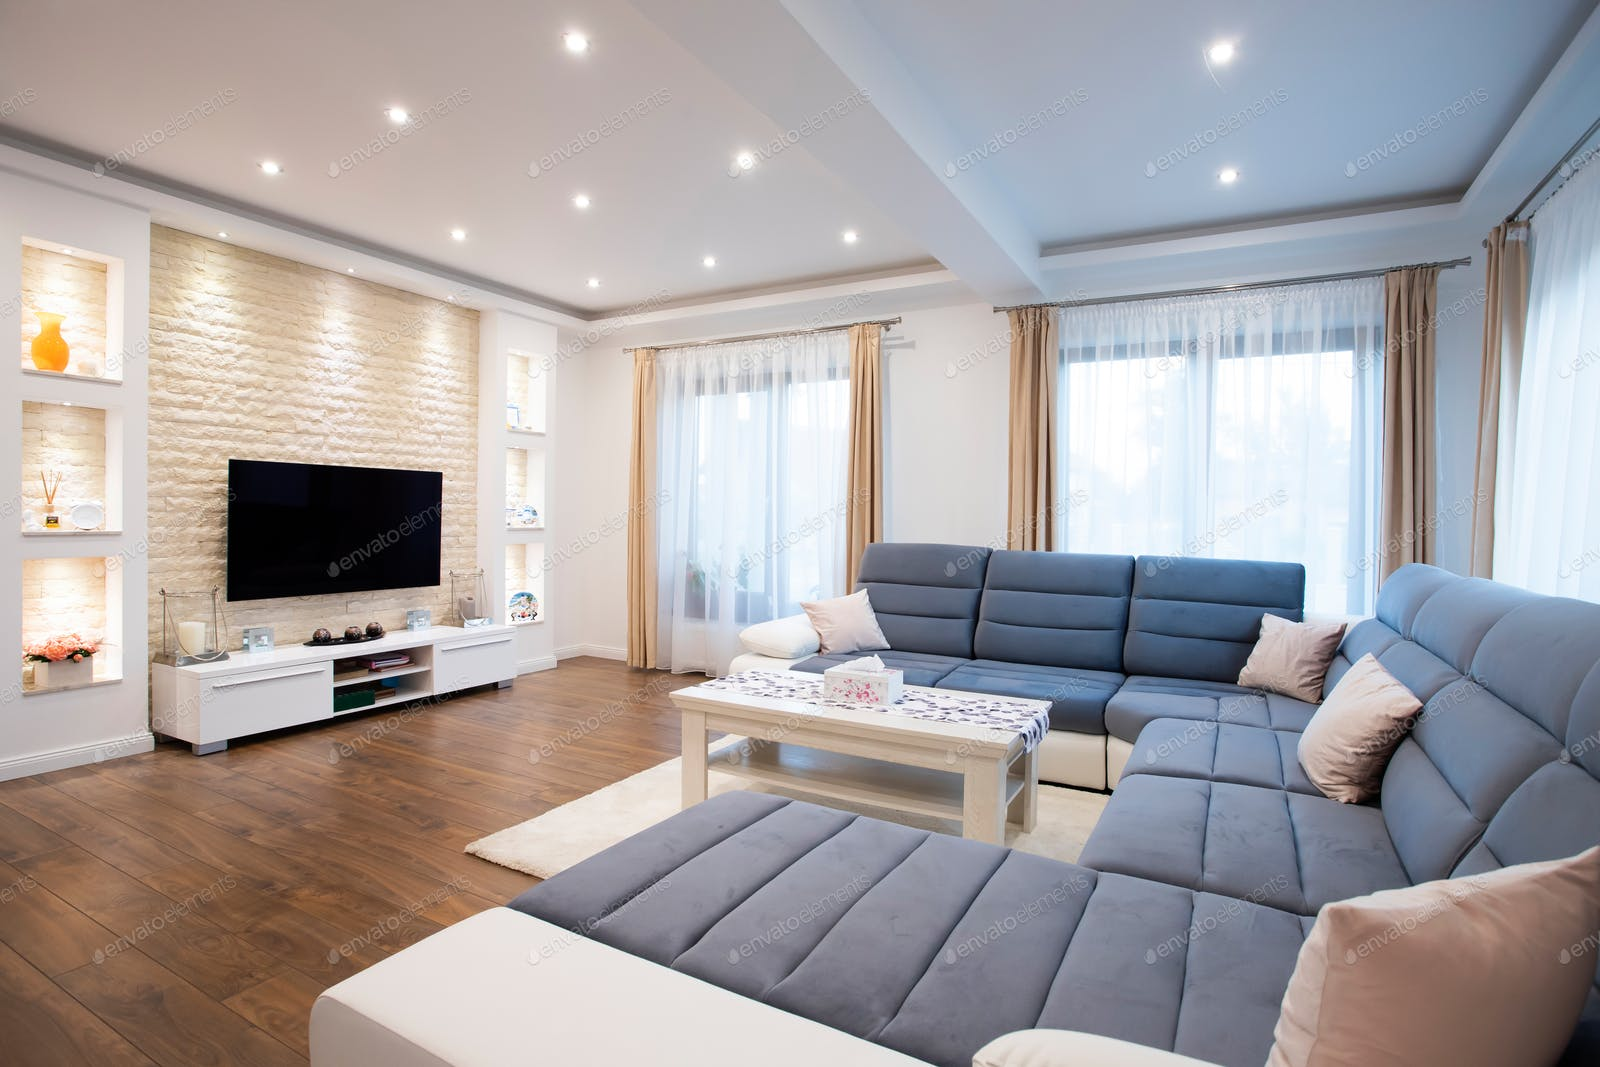 Interior Of A Rich House Cozy Living Room Photo By Erika8213 On Envato Elements